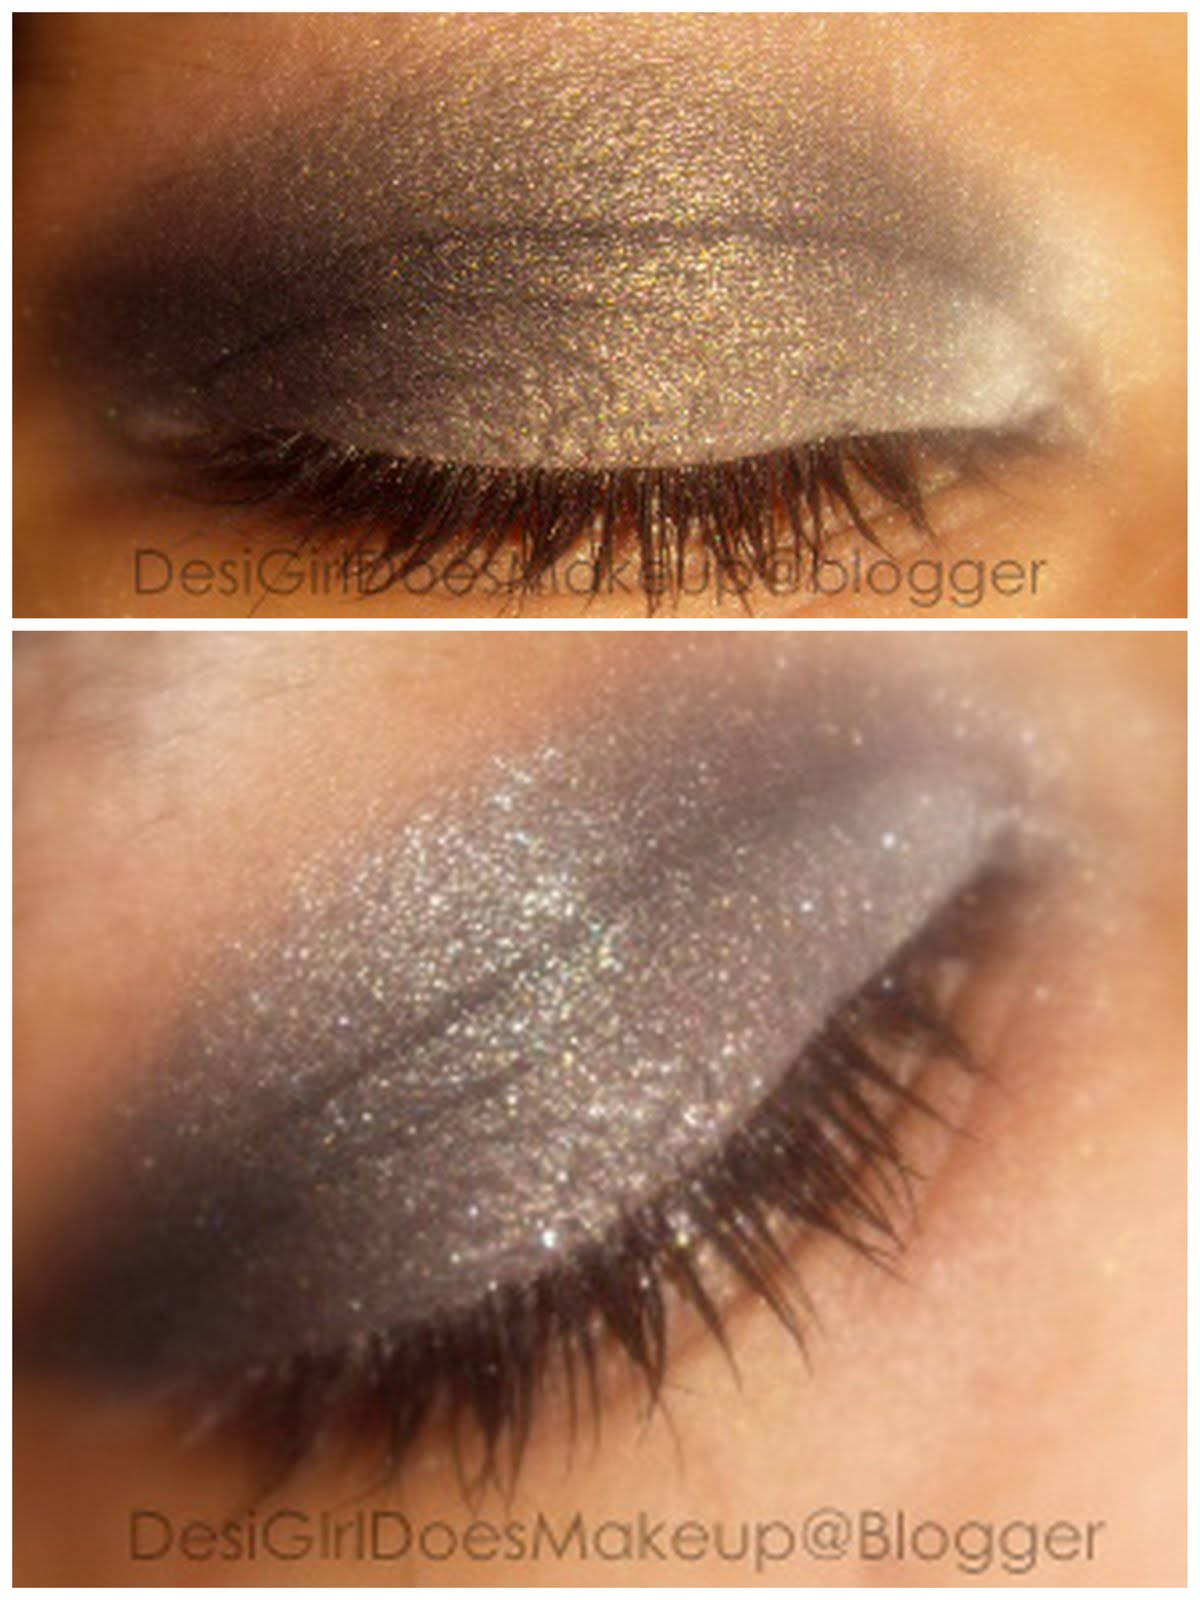 Desi Girl Does Makeup: EOTD: How to wear black eyeshadow